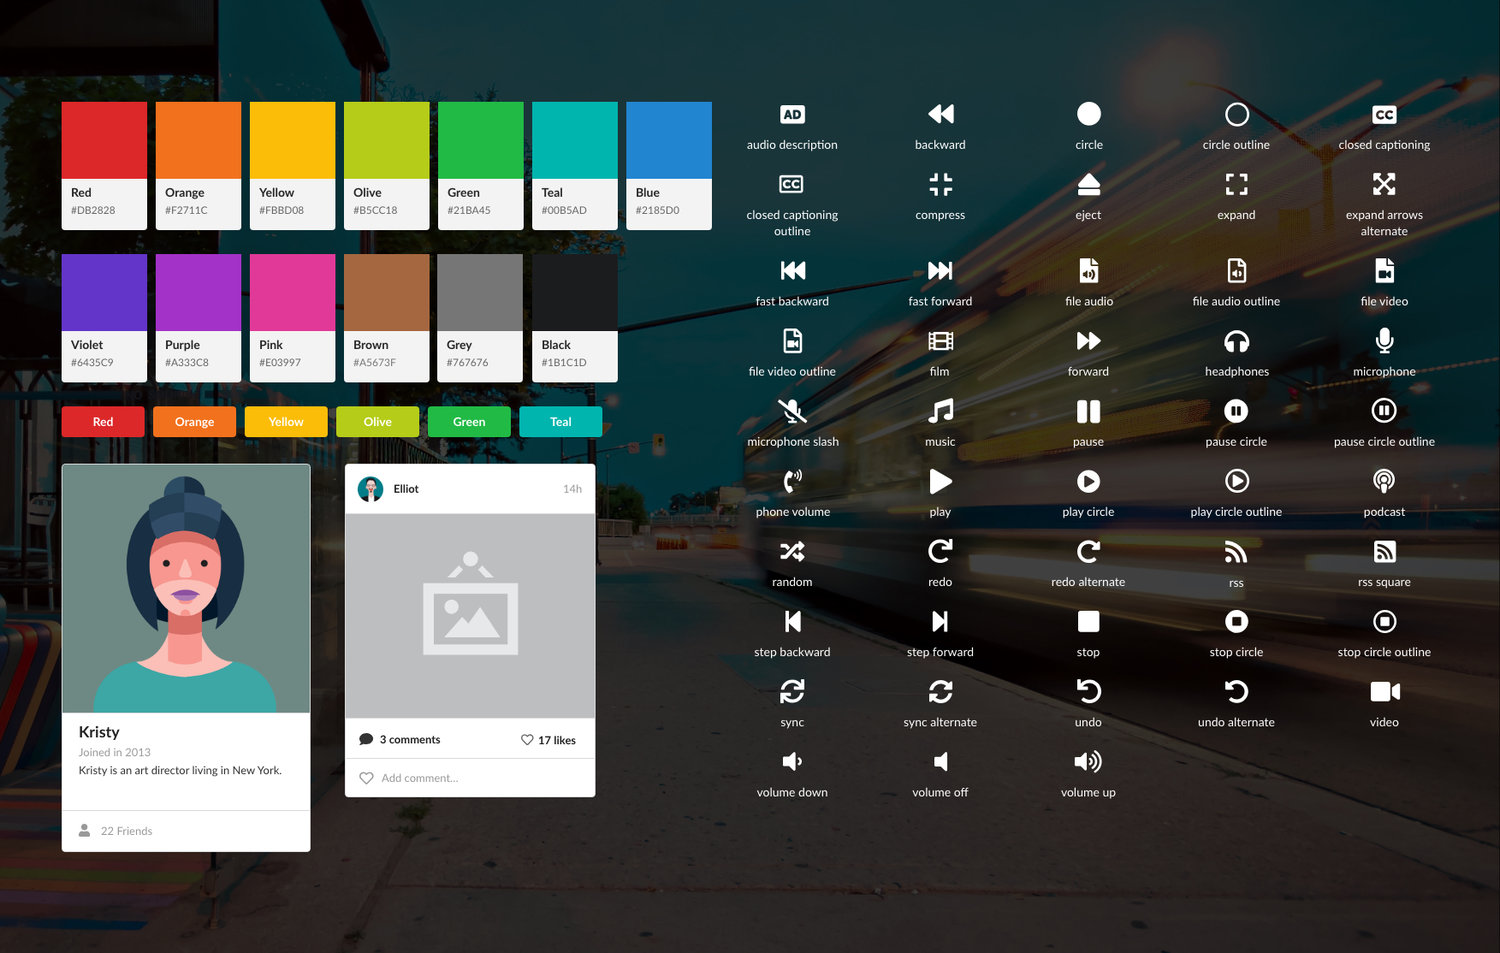 Working with Linked Assets in Adobe XD